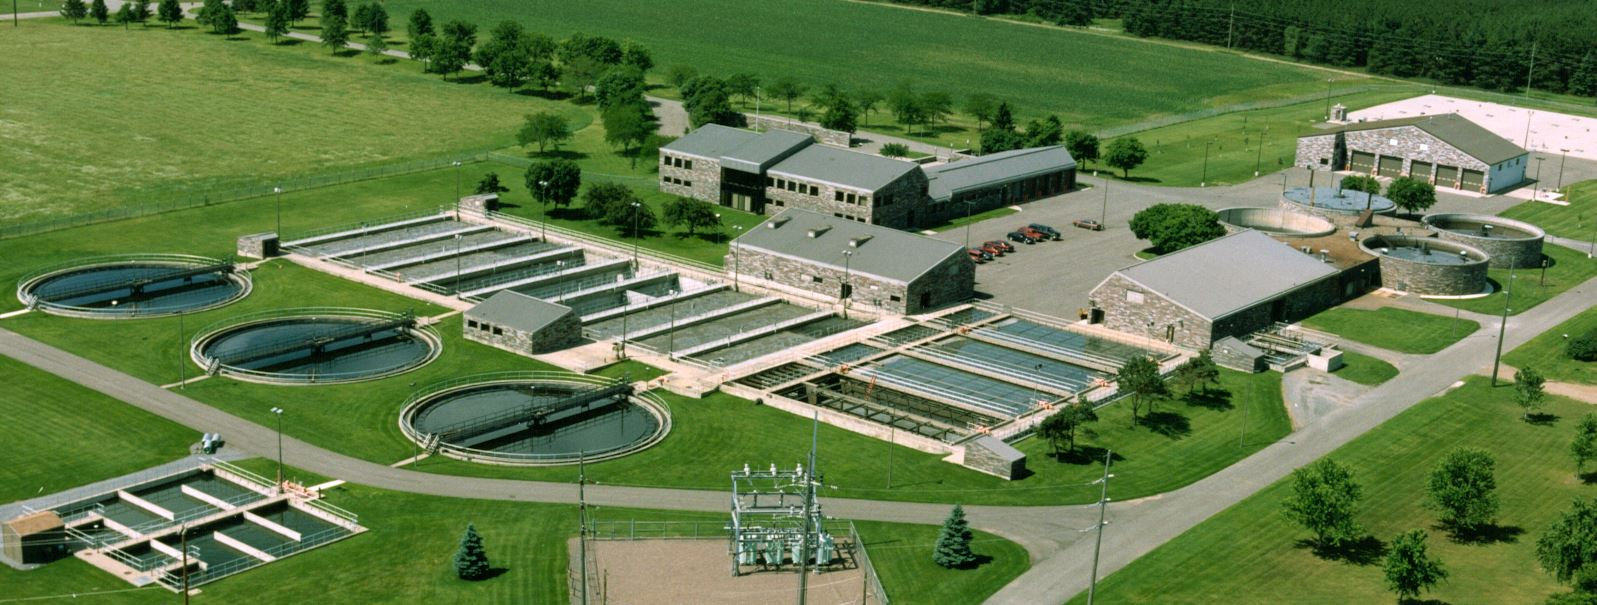 Aerial Photo of St. Cloud Wastewater Treatment Plant